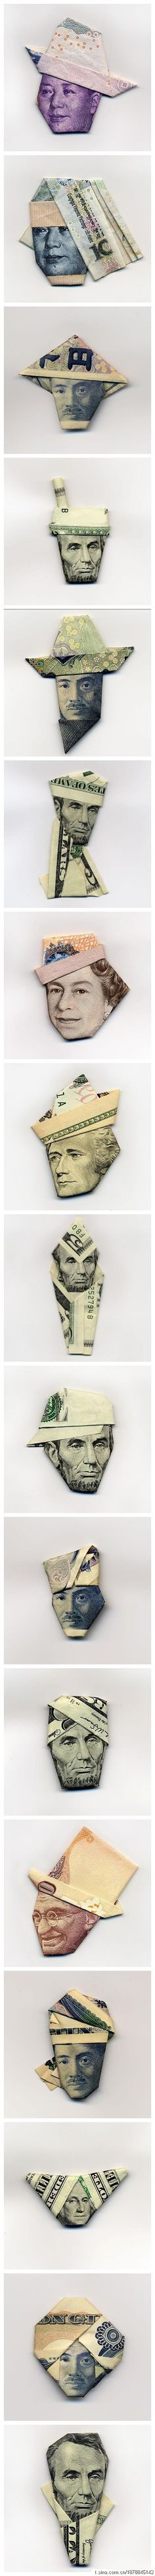 (AWESOME) Paper Money Figures